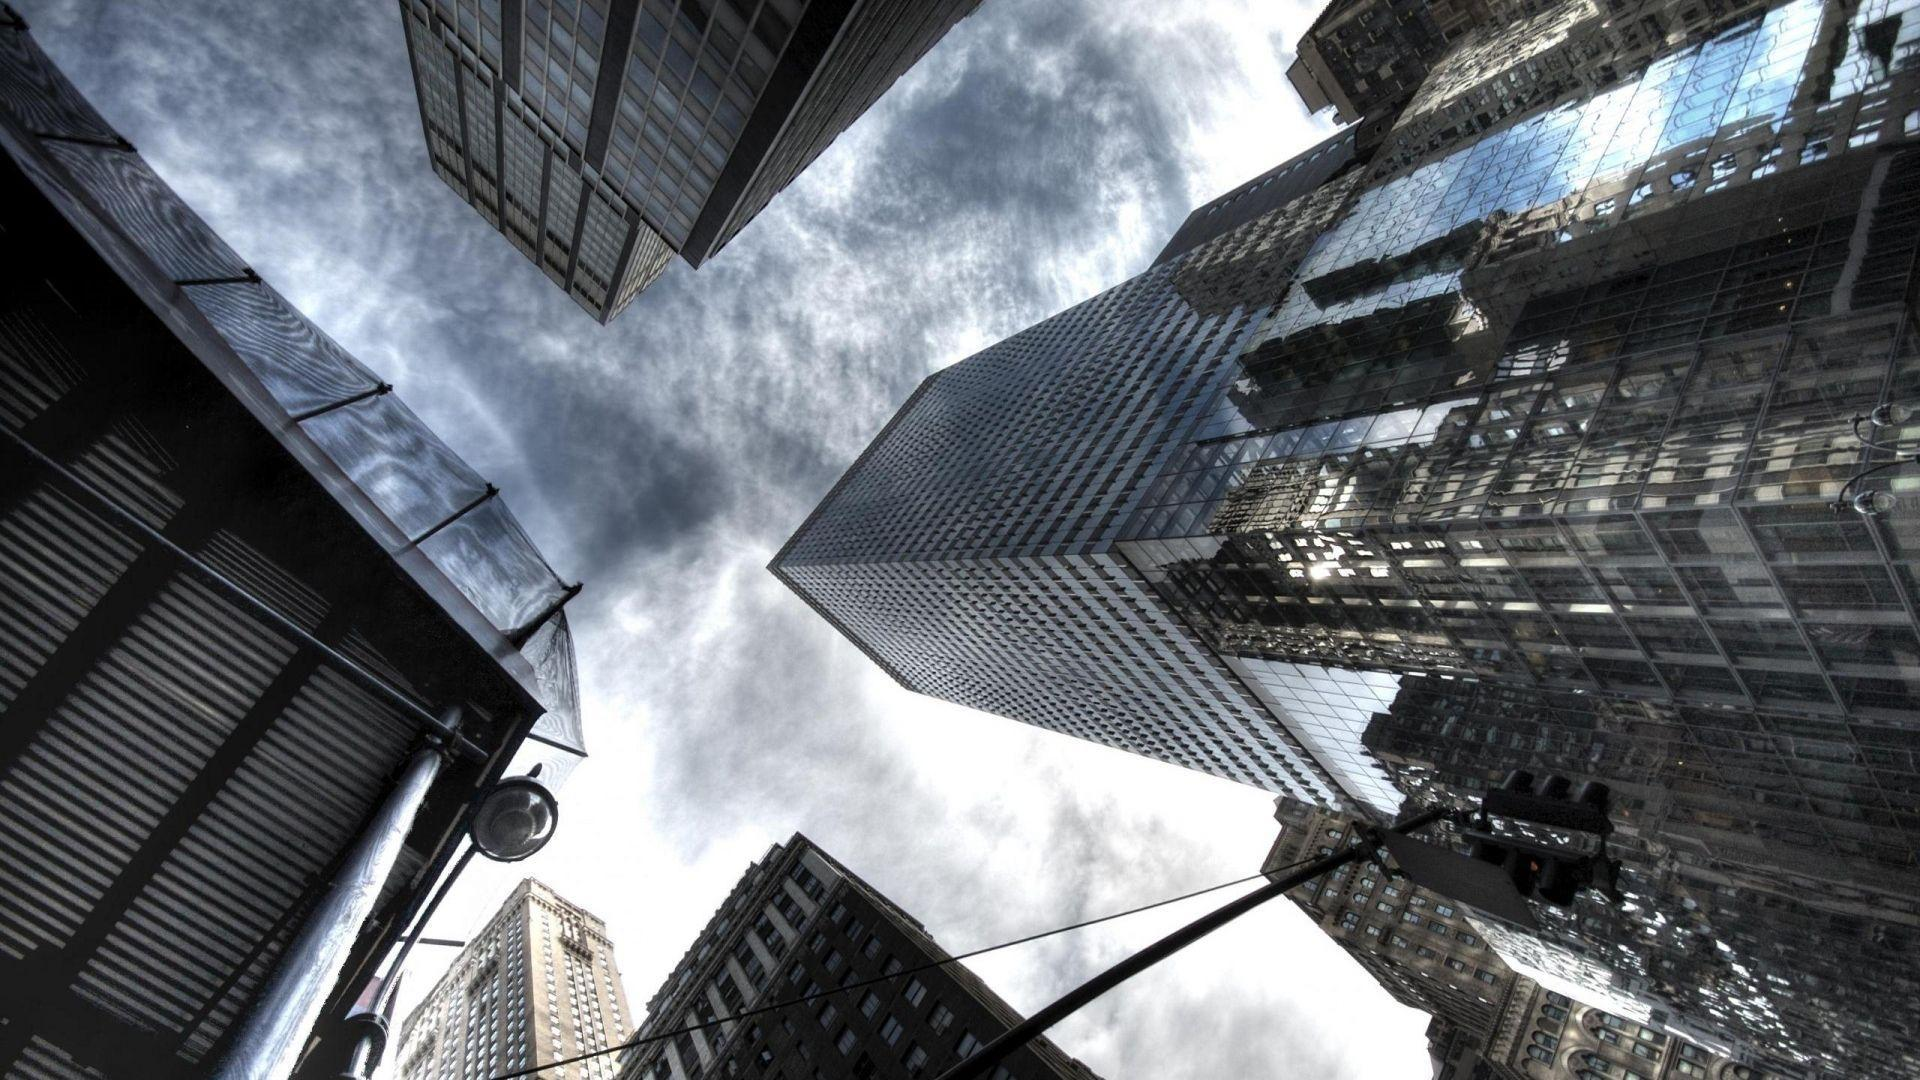 Wallpapers Of The Day: Architecture | 1920x1200px Architecture ...